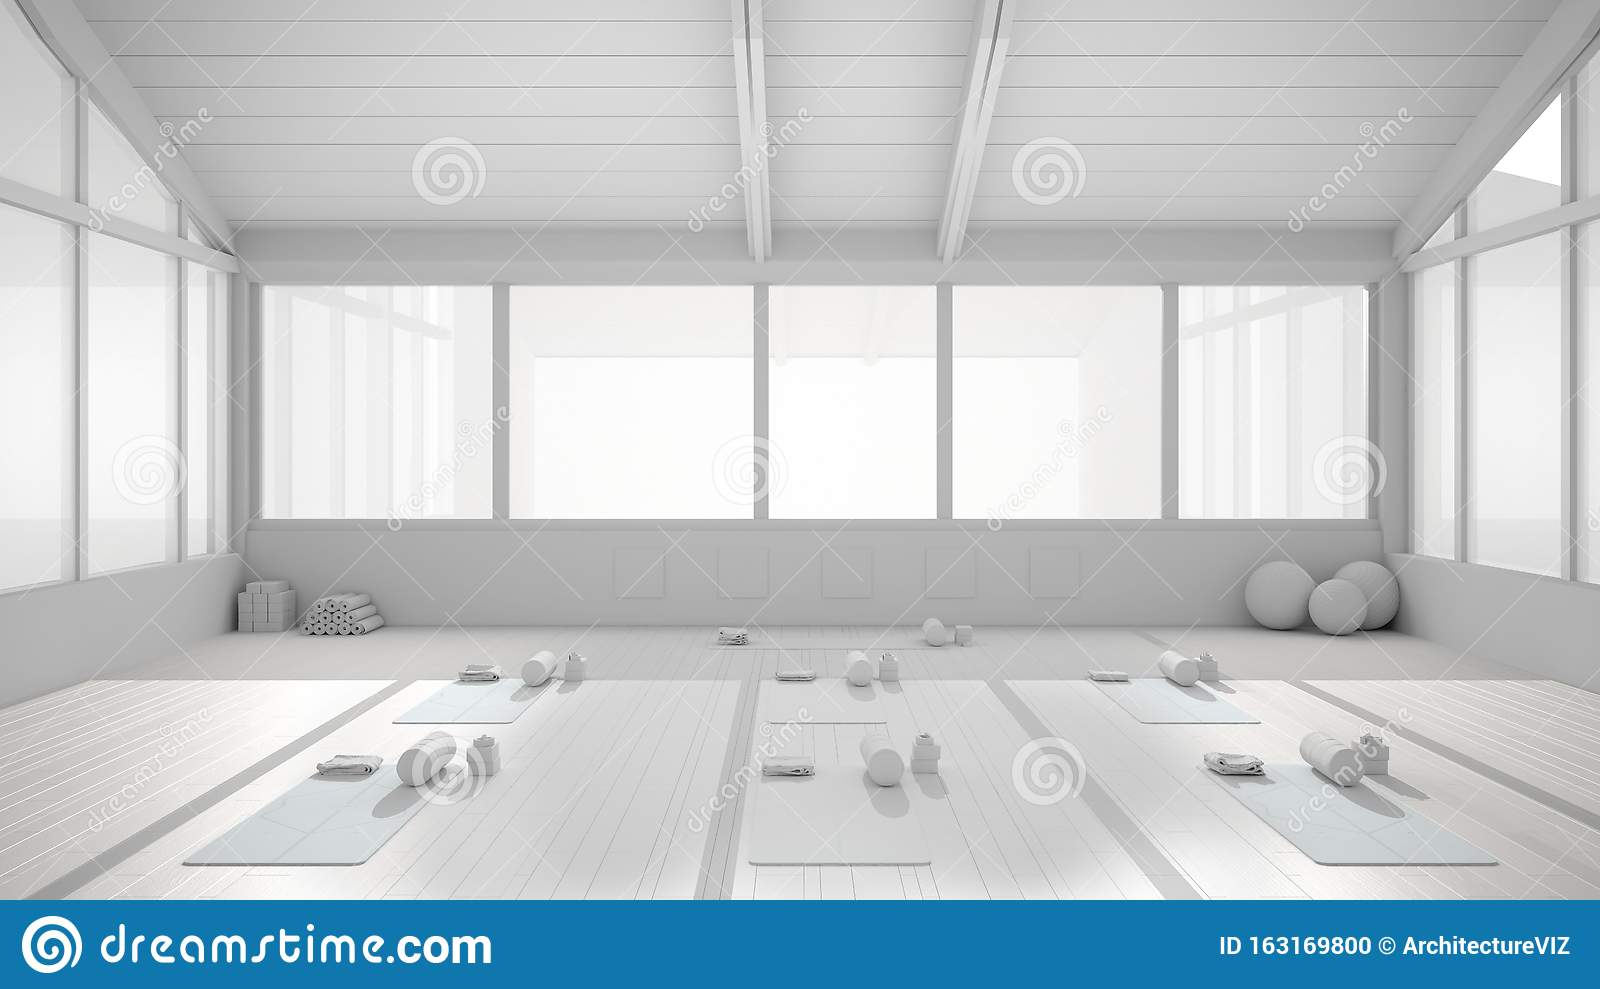 Total White Project Draft Of Empty Yoga Studio Interior Design Architecture Minimal Open Space Spatial Organization With Mats Stock Illustration Illustration Of Empty Tranquil 163169800